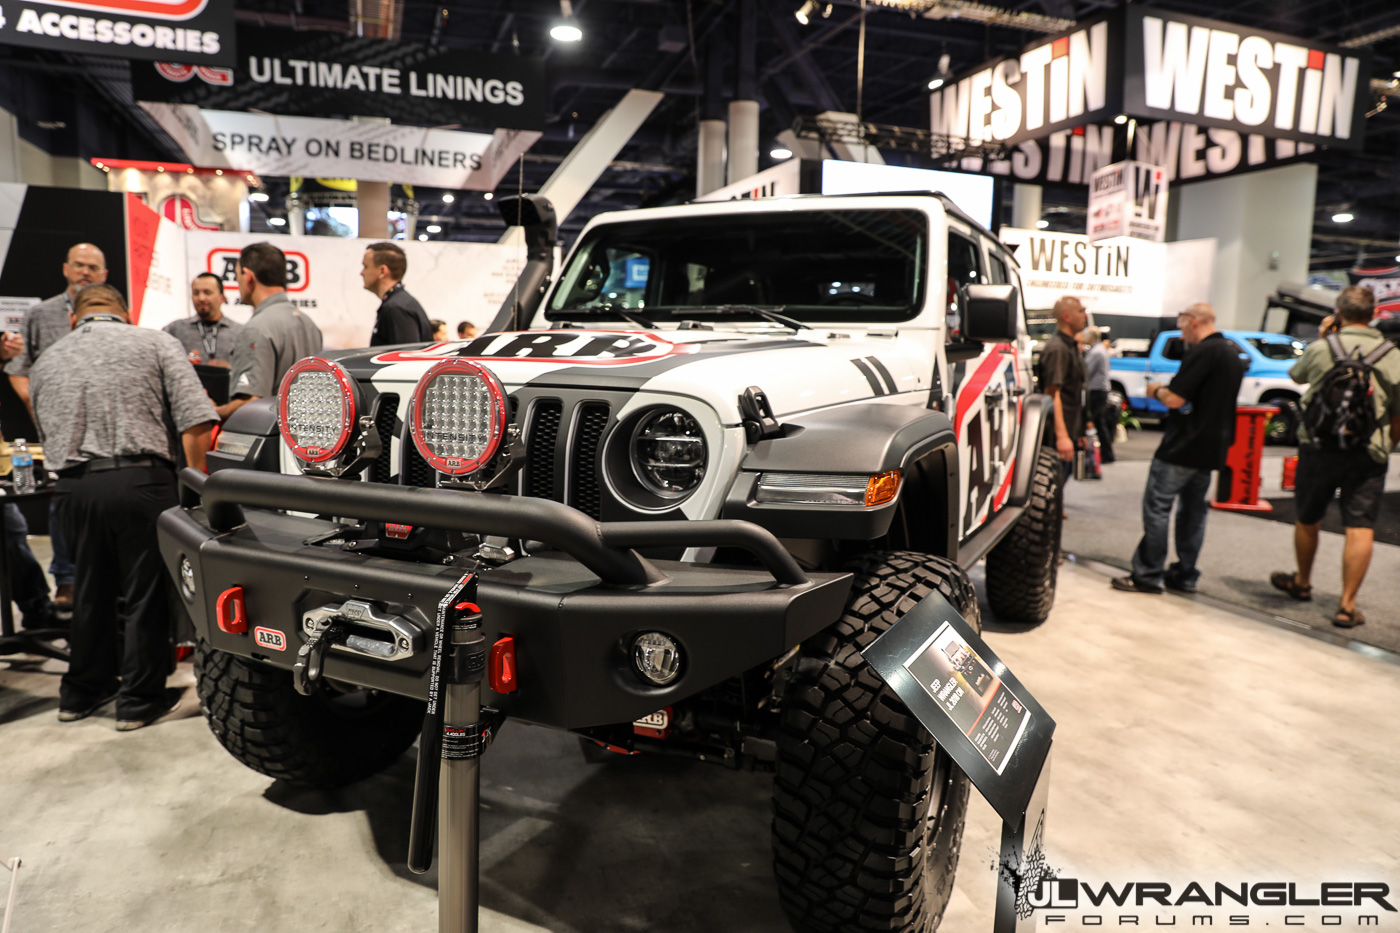 2017 Jeep Wrangler Unlimited Accessories >> ARB 4x4 Accessories JL Products & Build [SEMA 2018 - JLWF Coverage] | 2018+ Jeep Wrangler Forums ...